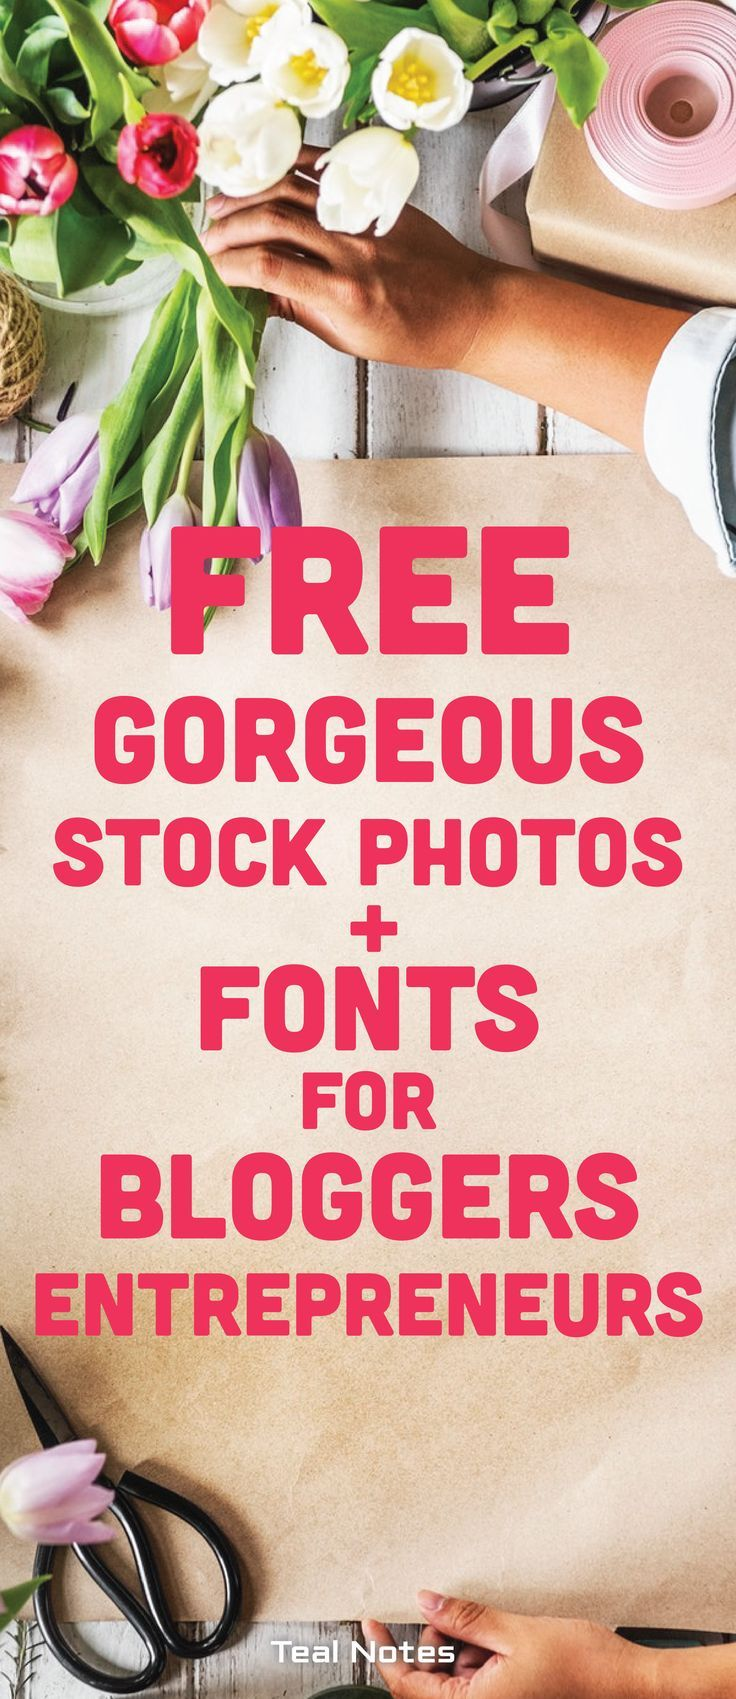 Here's a super list of free stock photos for your blog (and free fonts for your blog too!). Keep your branding on point with these awesome FREE resources. Online entrepreneurs can use stock photos for pins, banners, freebies, downloads, etc. Check out the list! Teal Notes | Free Stock Photos | Free feminine Fonts | Make Money Blogging | Branding | Blogging |